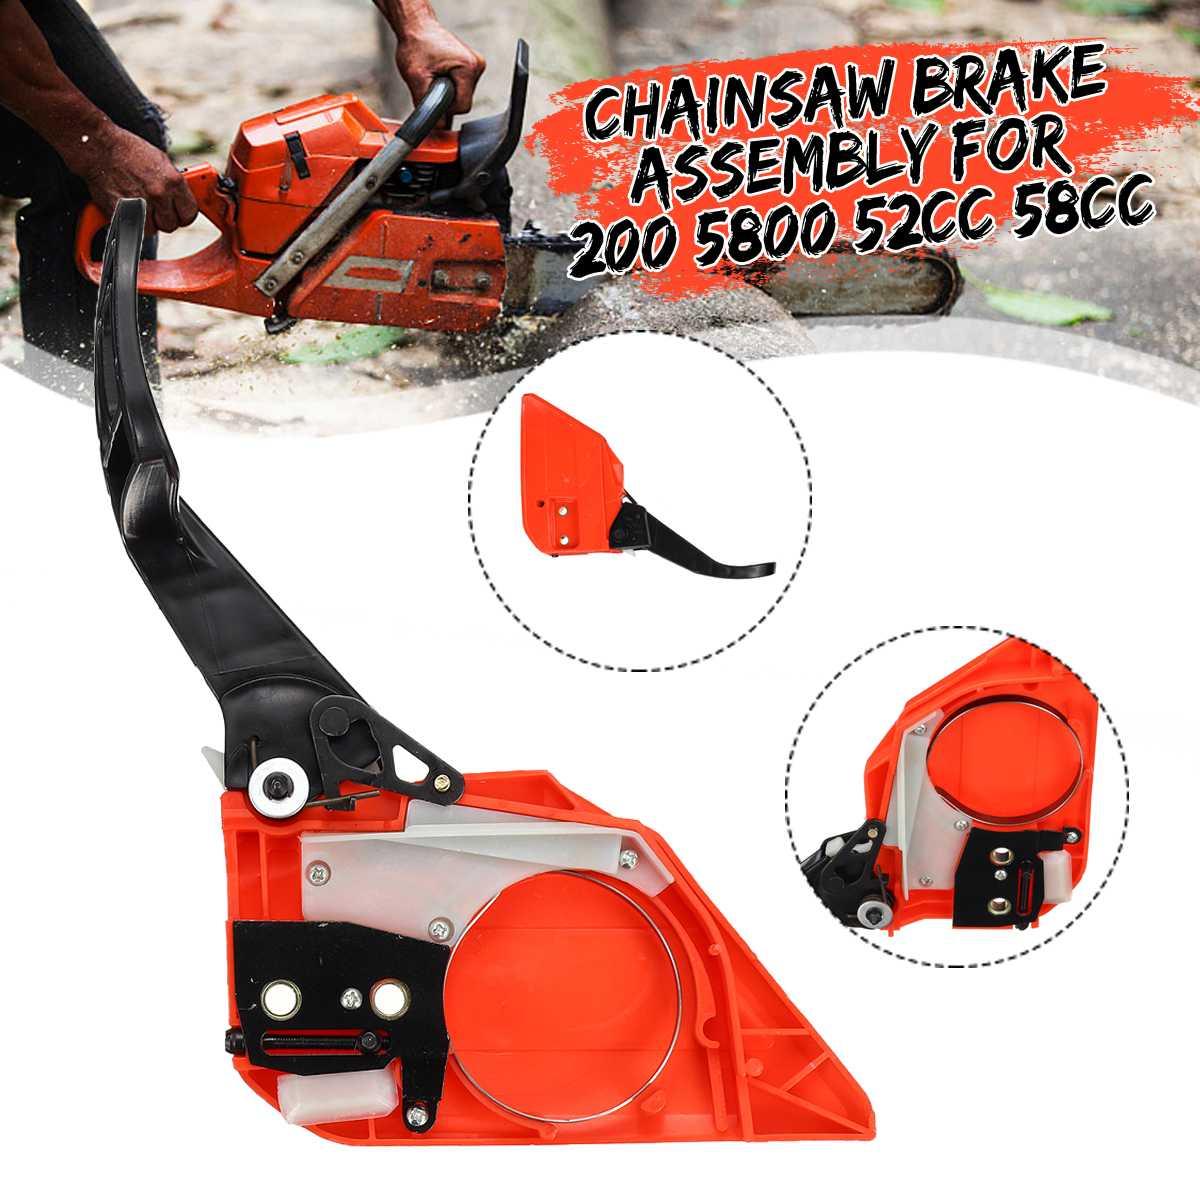 Brake Handle Clutch Sprocket Cover For Chinese Chainsaw 200 5800 52cc 58cc Durable And Reliable Brake Handle Sprocket Cover